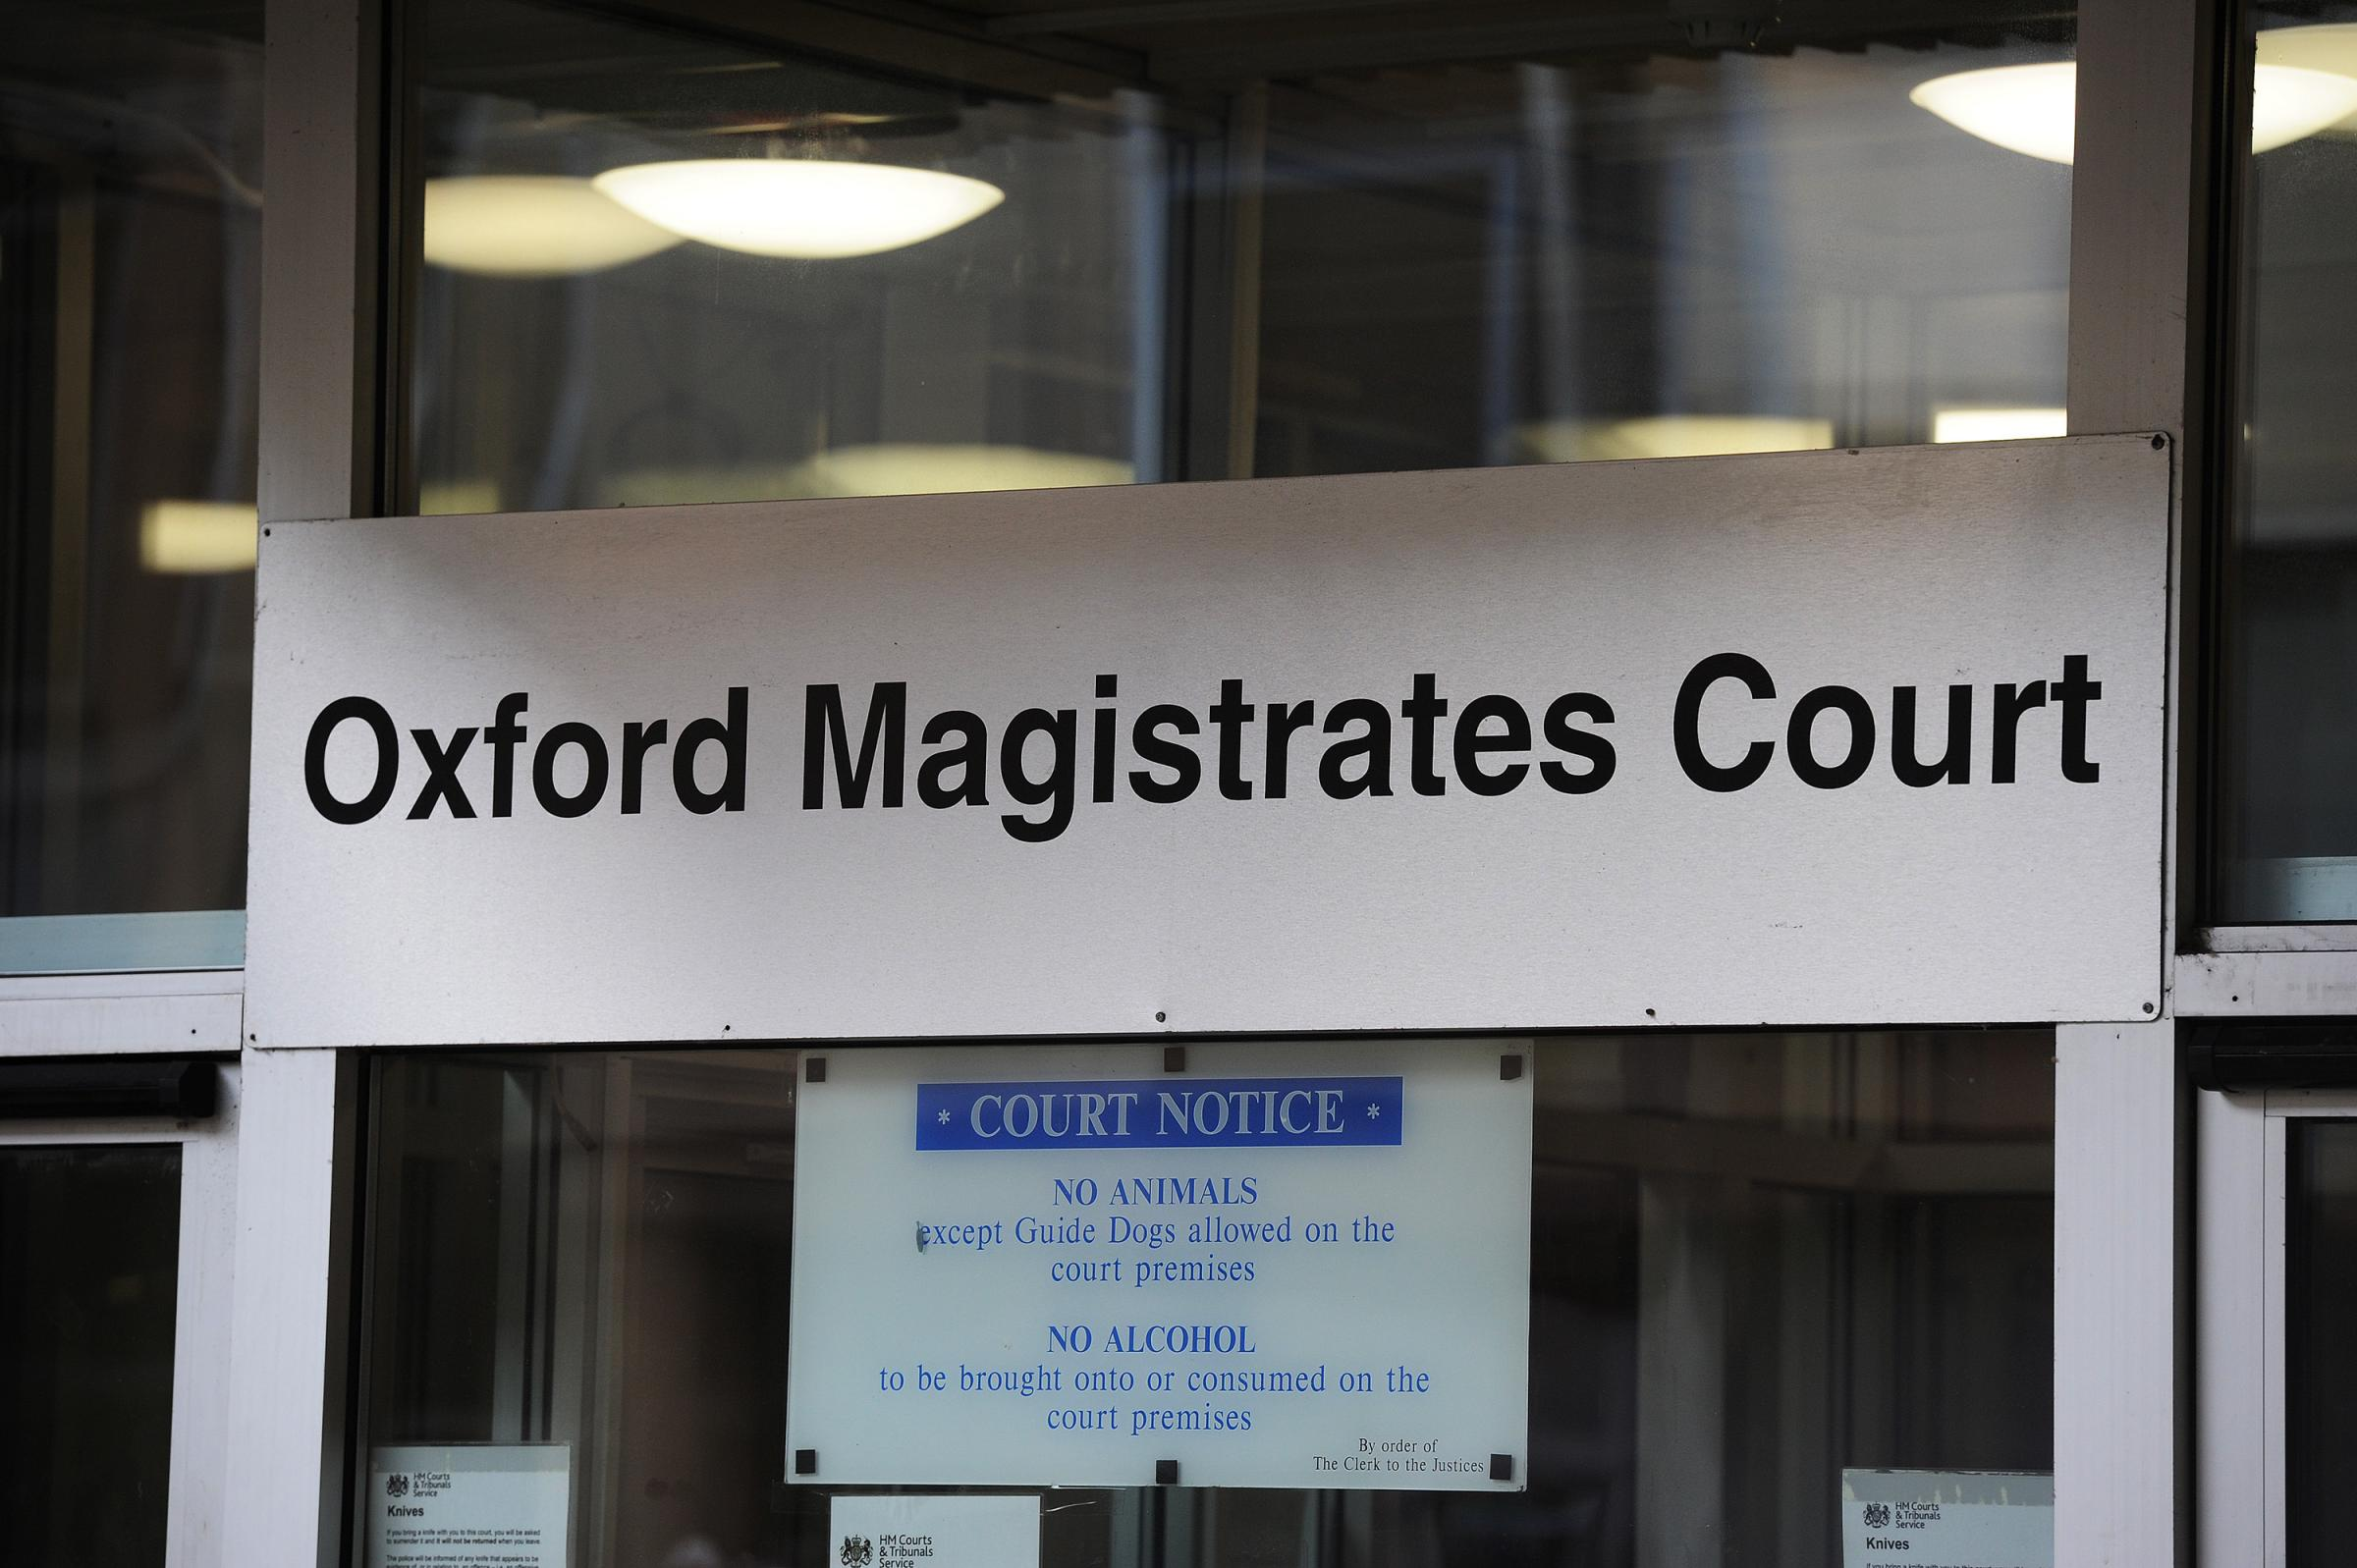 Sign outside Oxford Magistrates' Court